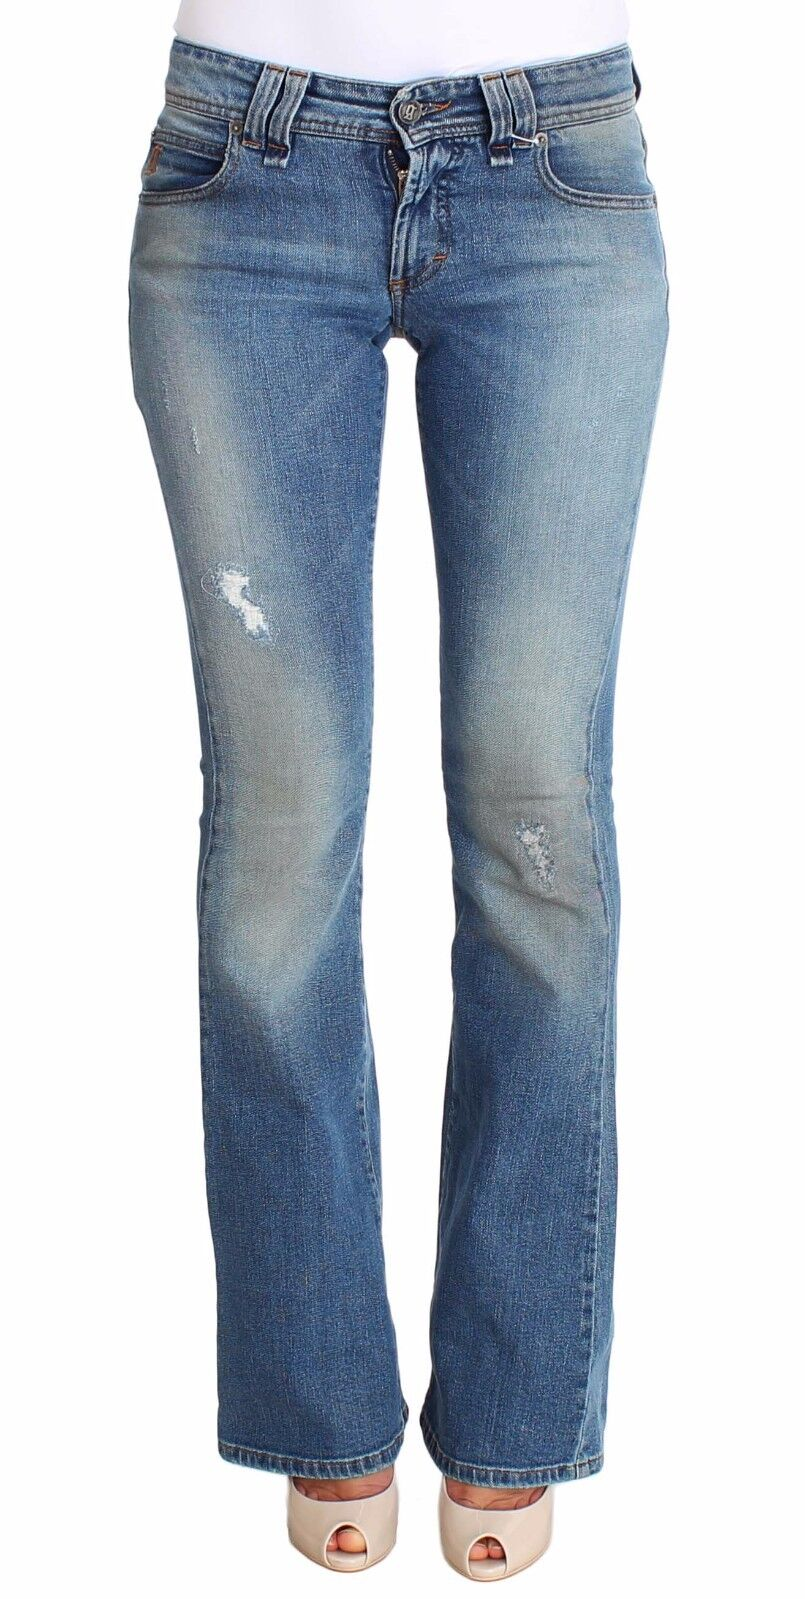 NWT  360 JOHN GALLIANO Jeans bluee Wash Cotton Stretch Flare Bootcut W26   IT40